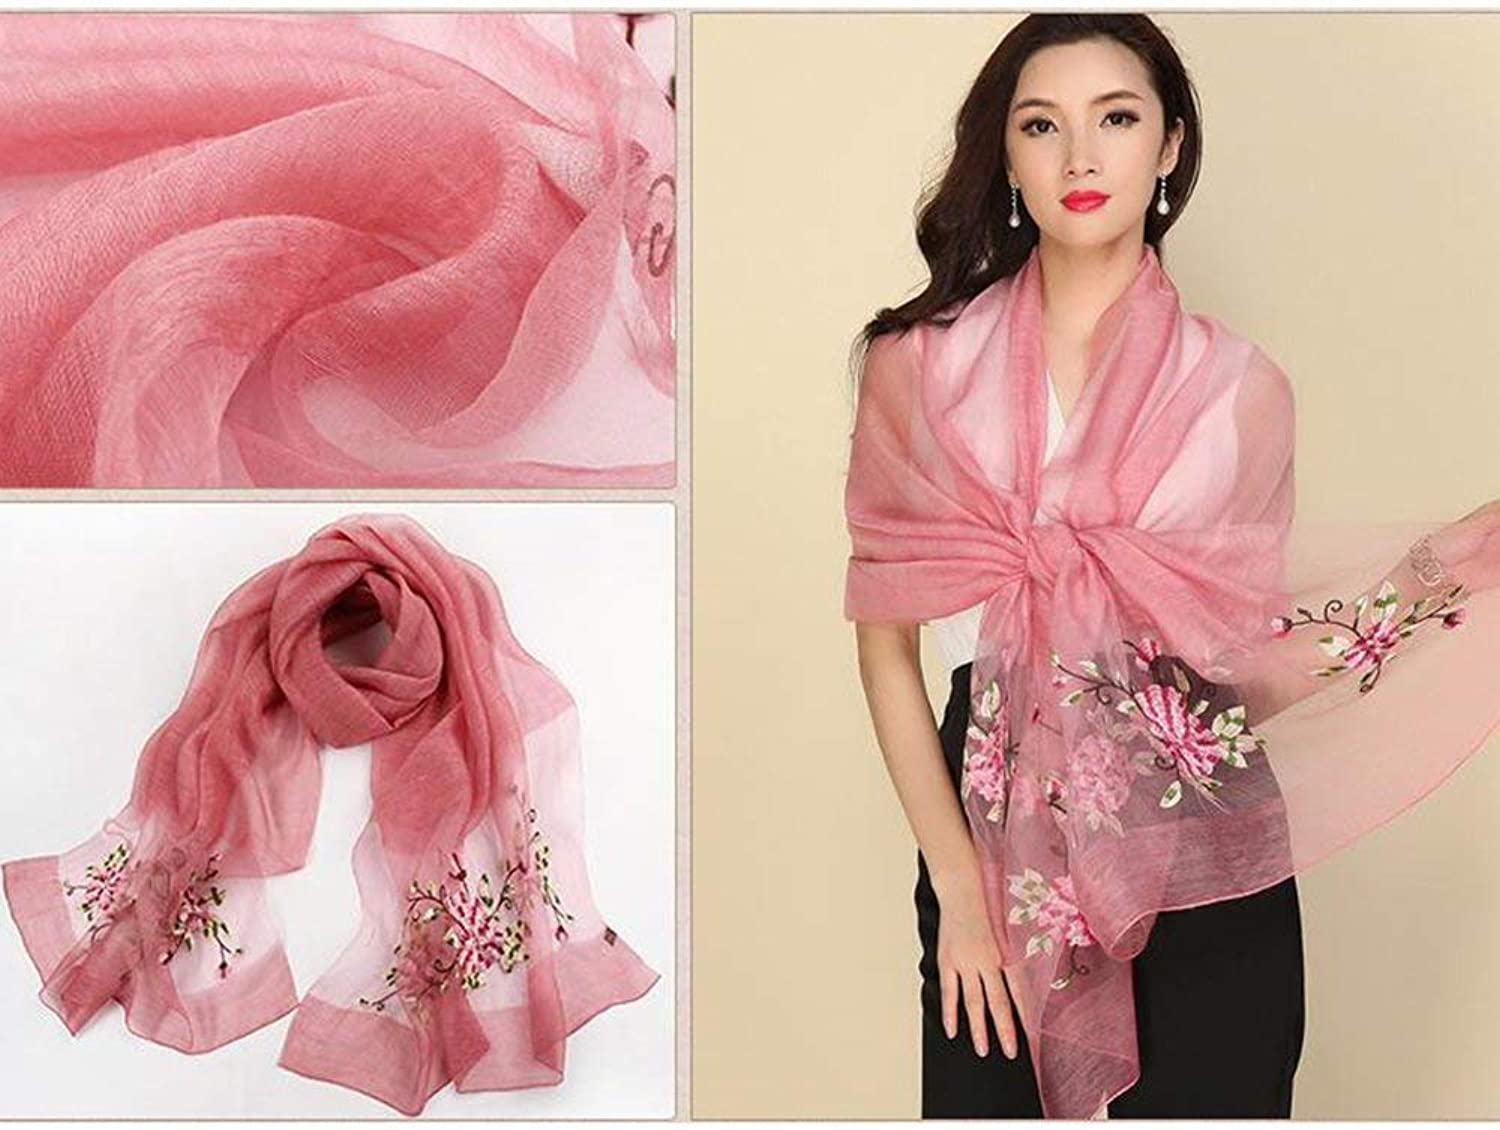 PLLP Sun Predection Warm Scarf, Windproof Scarf Female Silk Scarf Spring and Autumn Silk Embroidery Scarves Sunscreen Shawl Beach Scarf for Gift